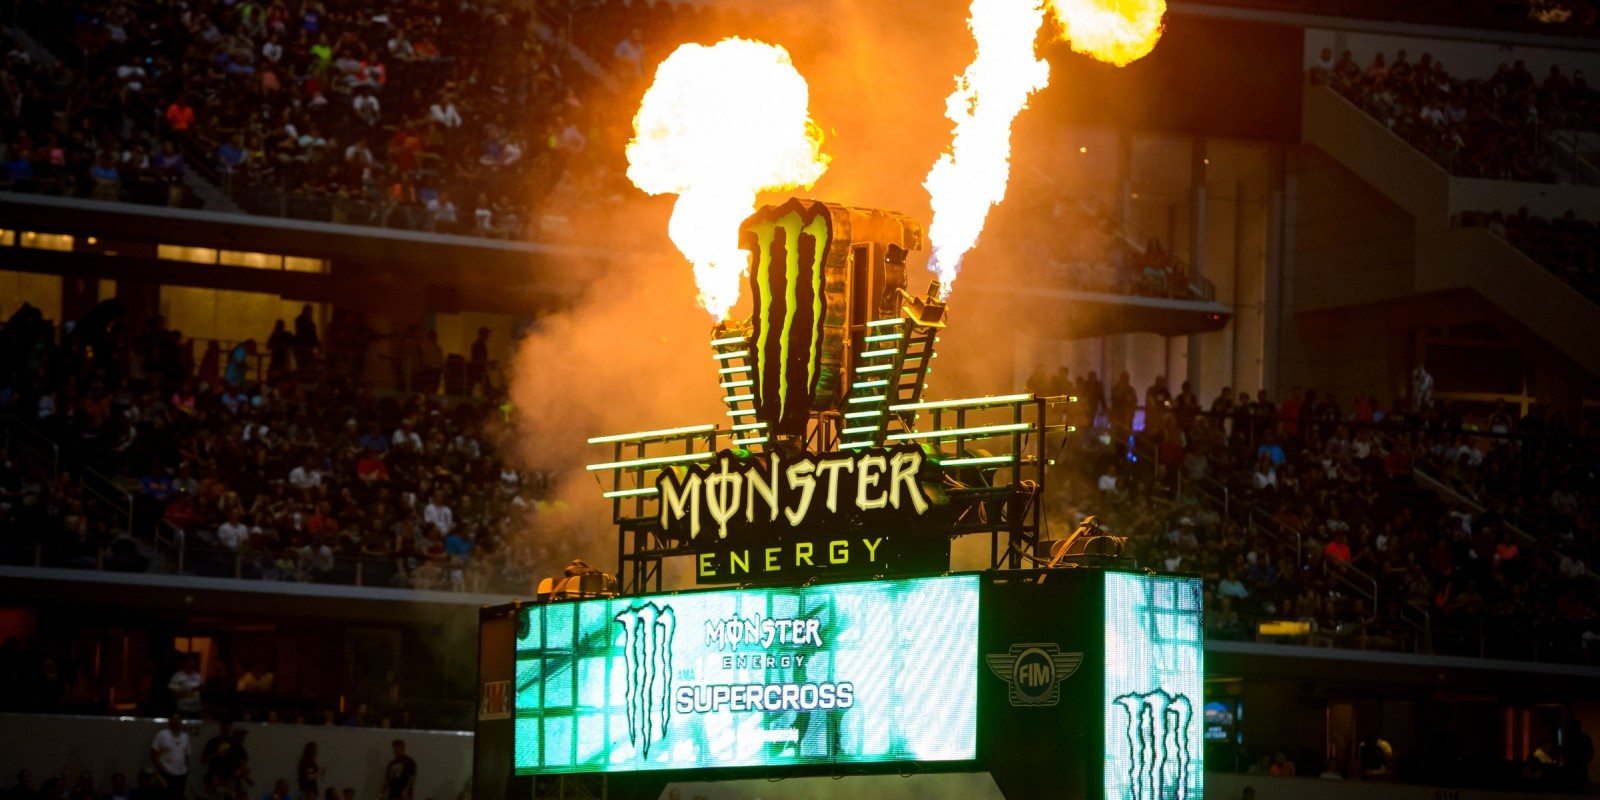 Monster athletes competes in the 2016 Supercross season.